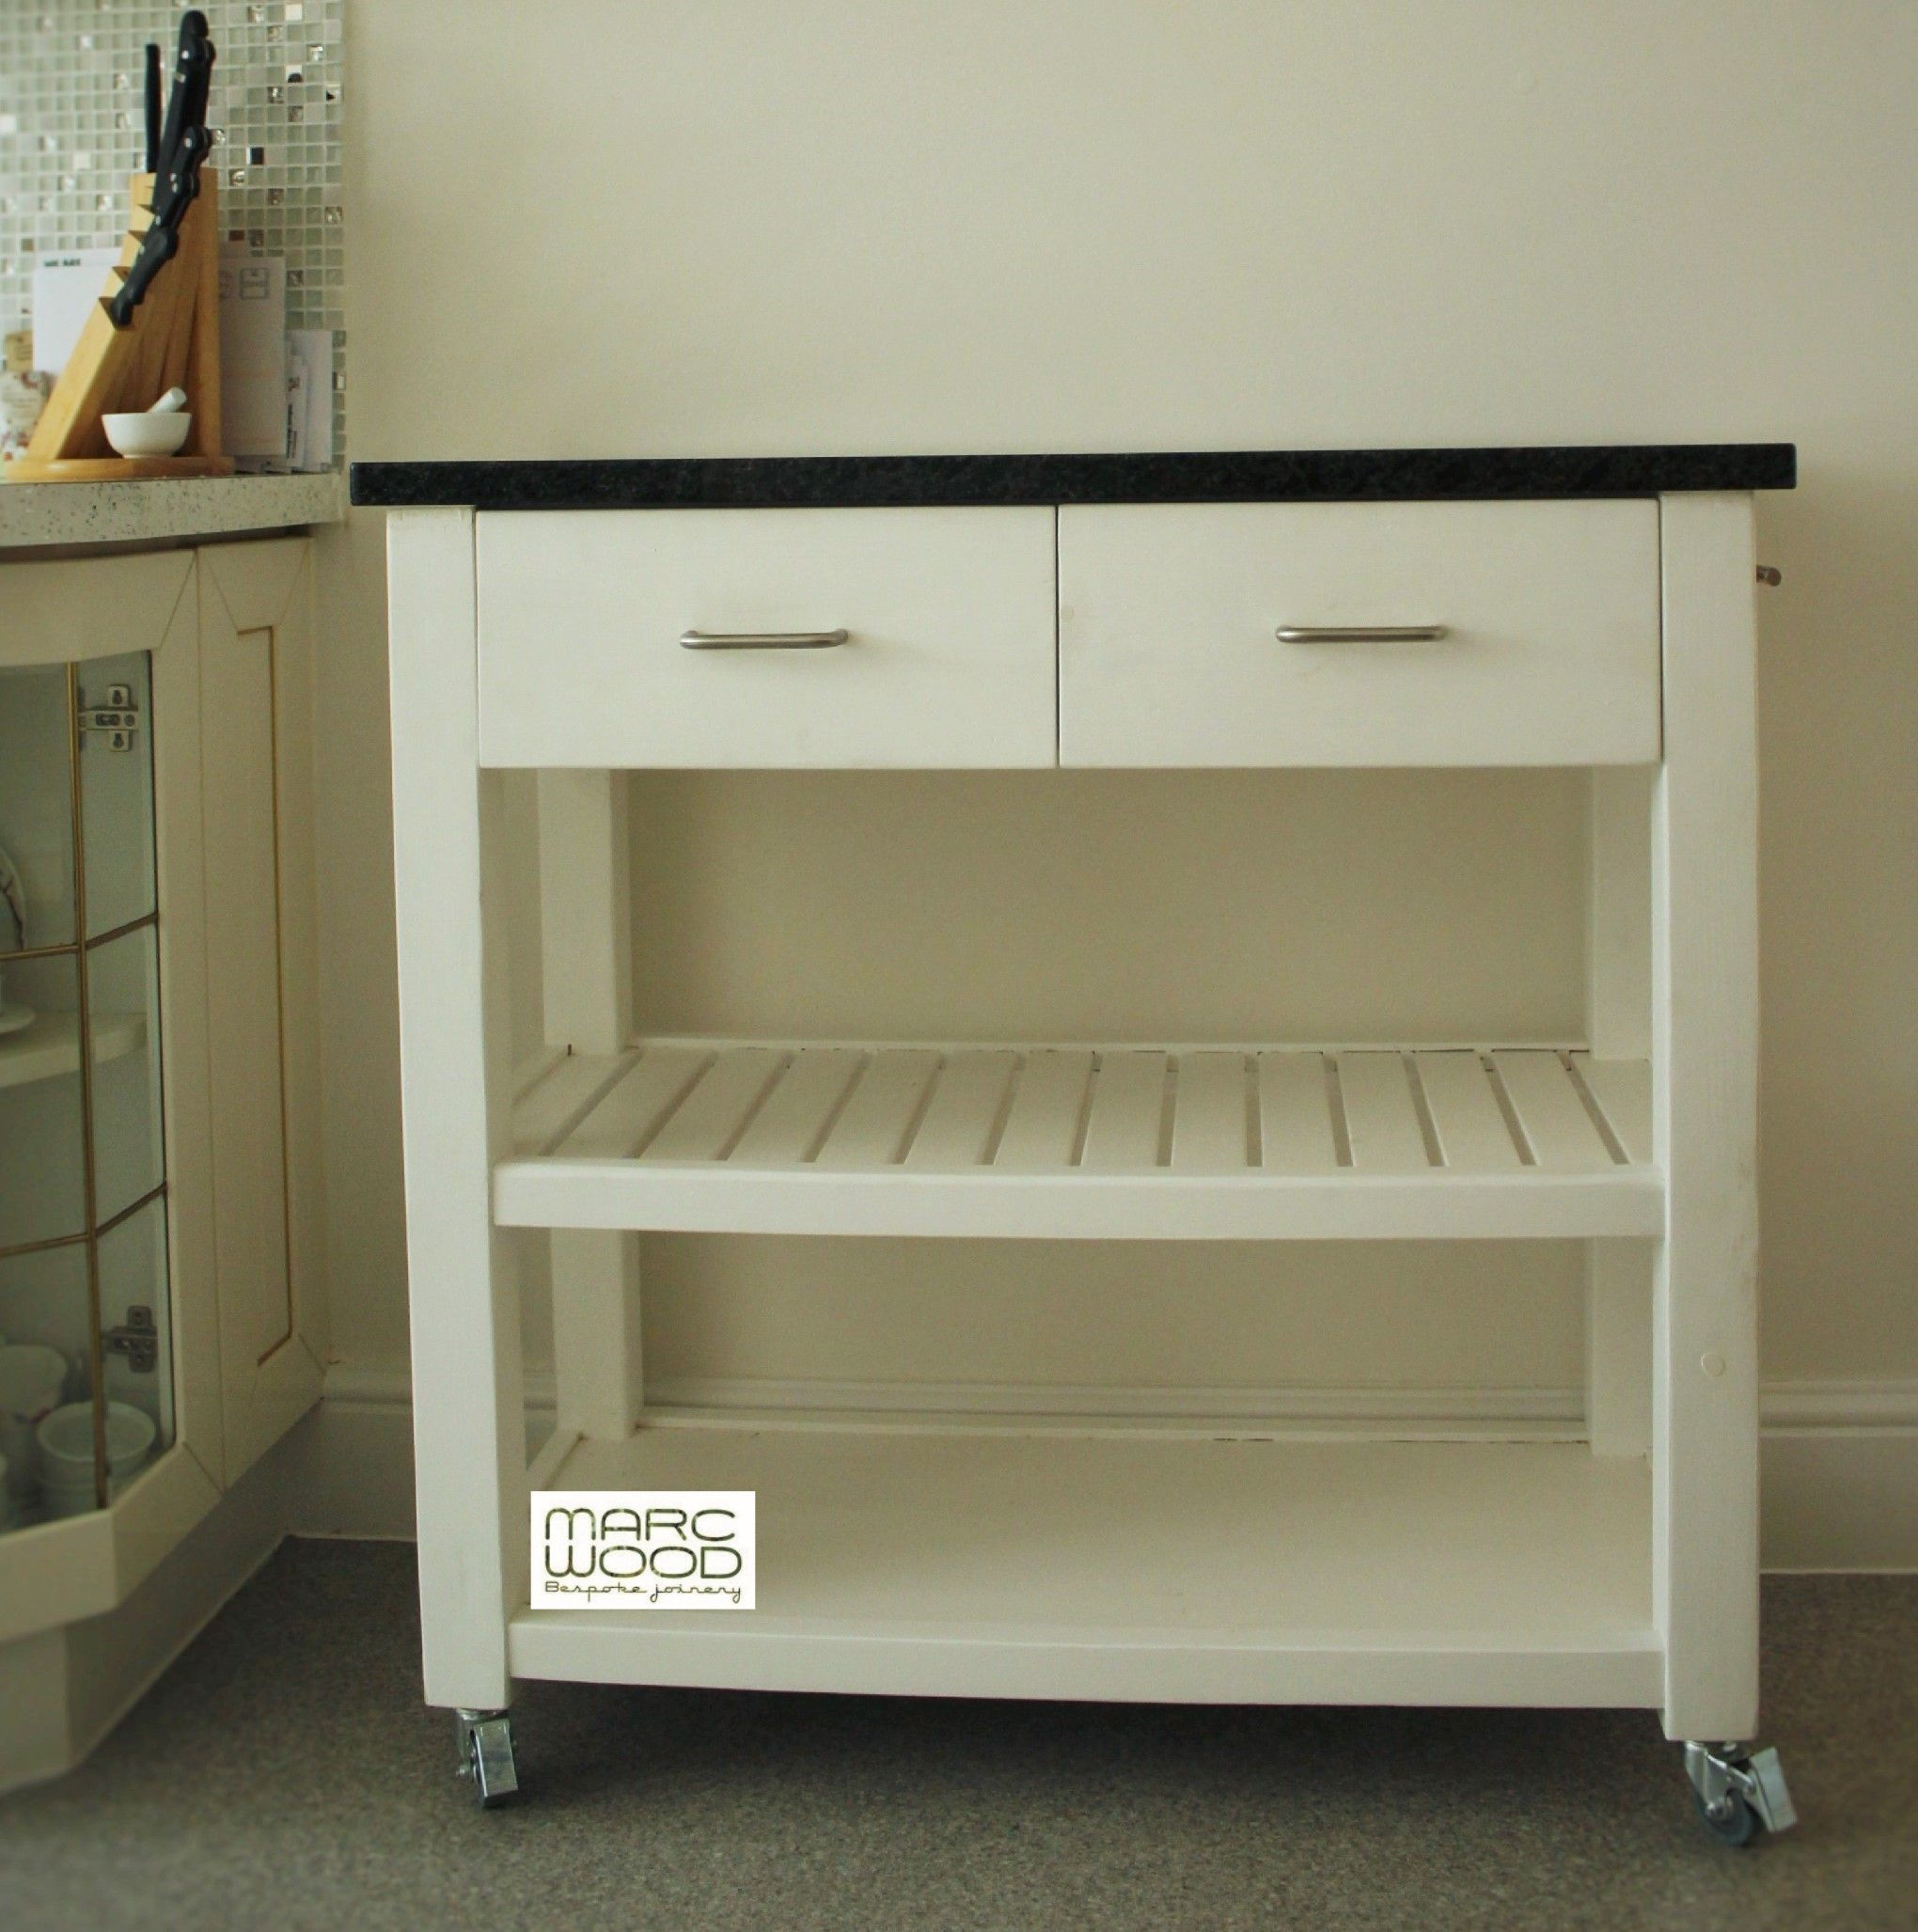 Handmade Available On Etsy Uk Kitchen Island Butchers Trolley In Eco Friendly Solid Wood Painted Fresh White With Granite Worktop To